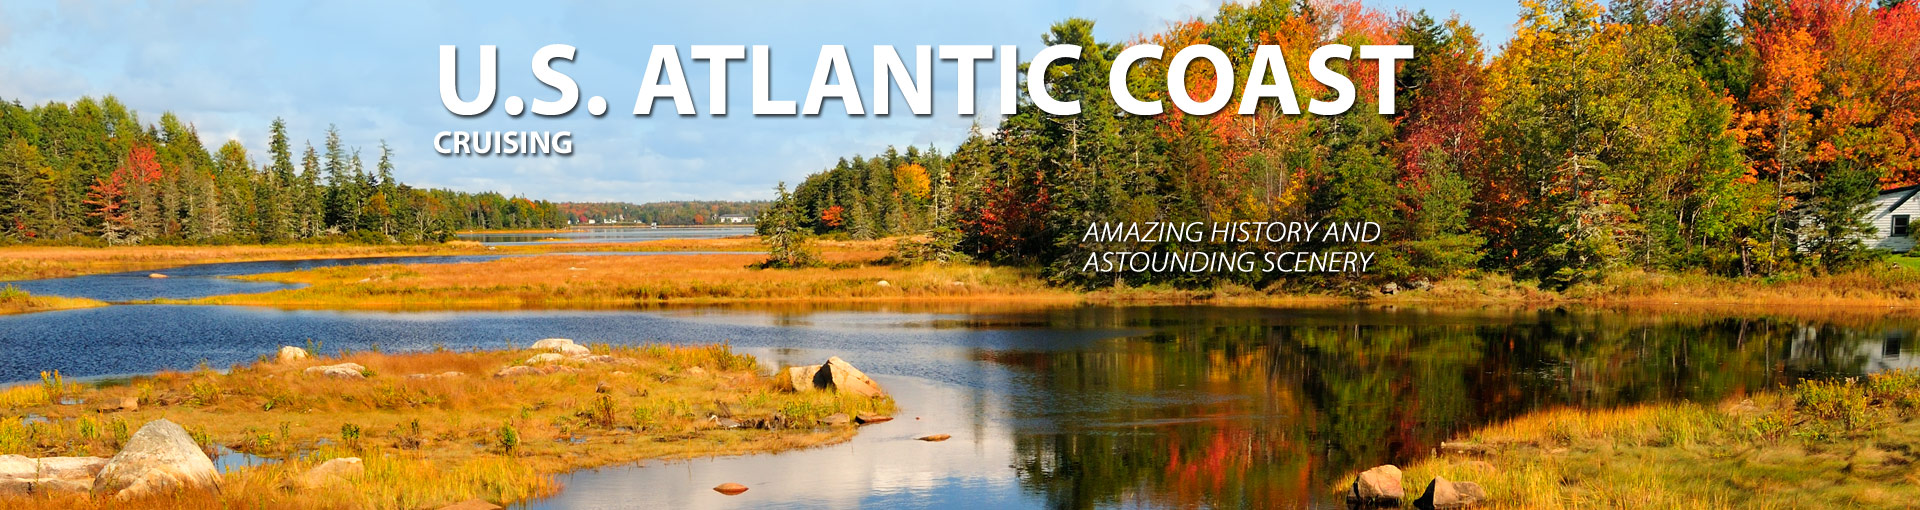 Cruises along U.S. Atlantic Coast